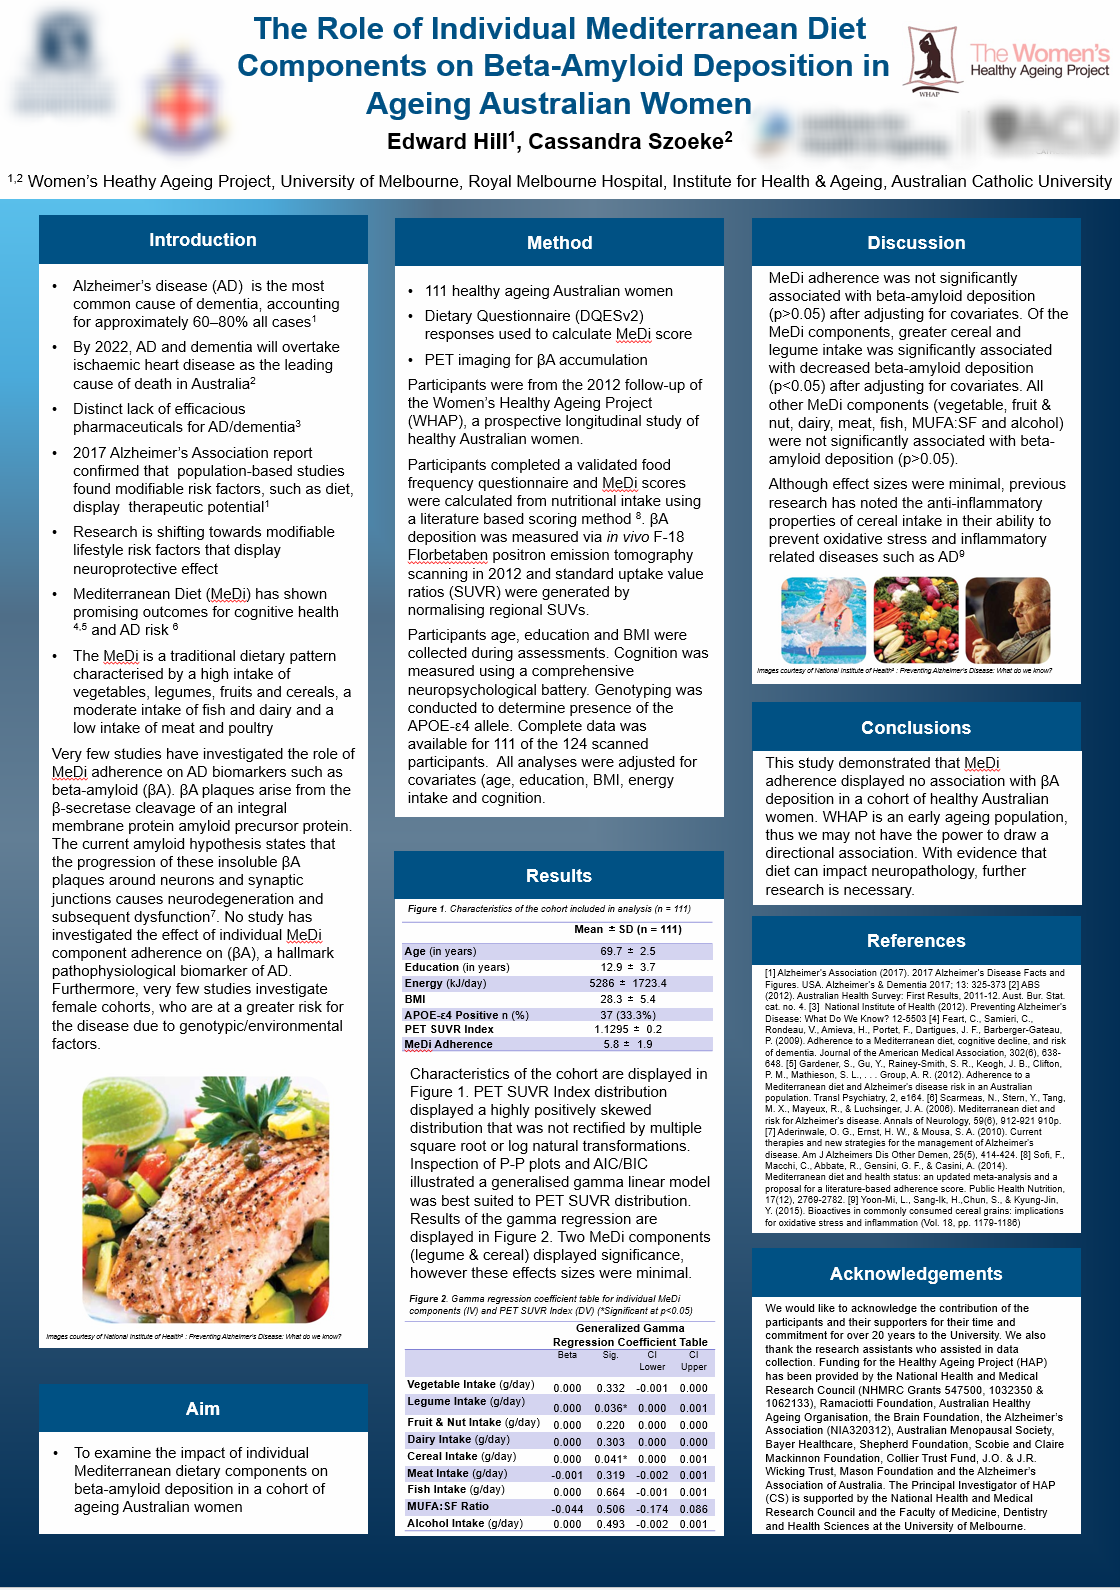 The Role of Individual Mediterranean Diet Components on Beta-Amyloid Deposition inAgeing Australian Women - Very few studies have investigated the role of MeDi adherence on AD biomarkers such as beta-amyloid (βA). The aim of this study was to examine the impact of individual Mediterranean dietary components on beta-amyloid deposition in a cohort of ageing Australian women. MeDi adherence was not significantly associated with beta-amyloid deposition after adjusting for covariates. Of the MeDi components, greater cereal and legume intake was significantly associated with decreased beta-amyloid deposition after adjusting for covariates. All other MeDi components (vegetable, fruit & nut, dairy, meat, fish, MUFA:SF and alcohol) were not significantly associated with beta-amyloid deposition.Citation: Hill, E., et al. (2017). The role of individual Mediterranean diet components on beta-amyloid deposition in ageing Australian women. Poster presented at 13th International Conference on Alzheimer's & Parkinson's Diseases (AD/PD), Vienna, Austria, 29 March-2 April.